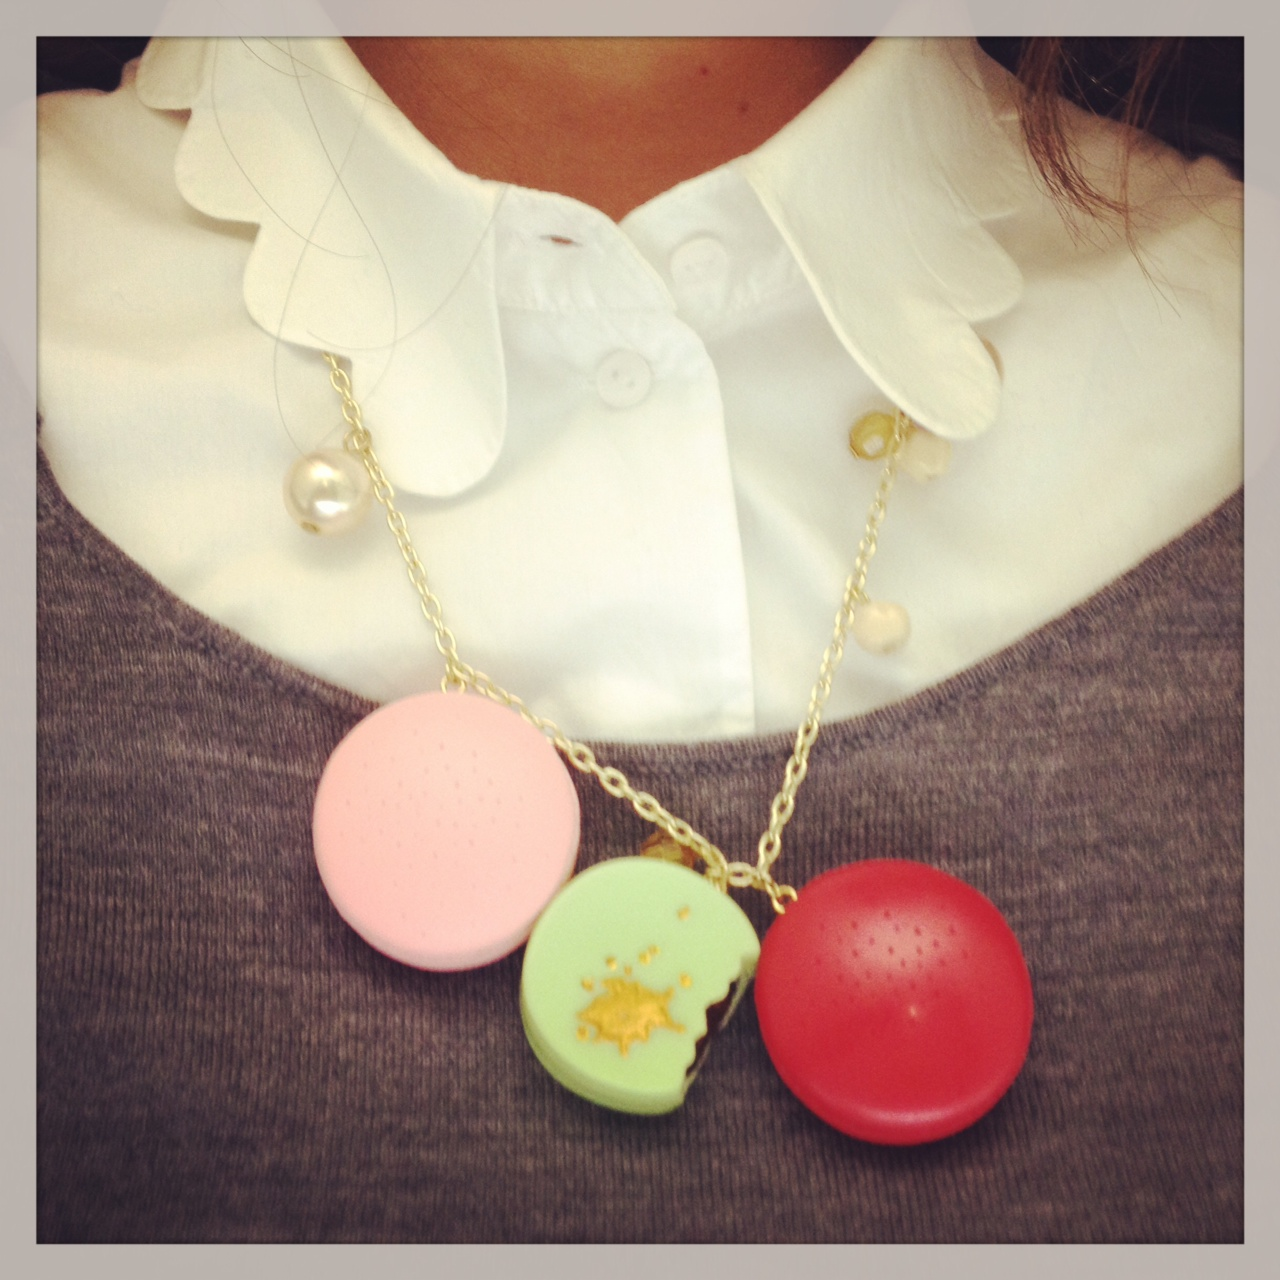 White collar from COS. Macaron necklace from Les Nereides.